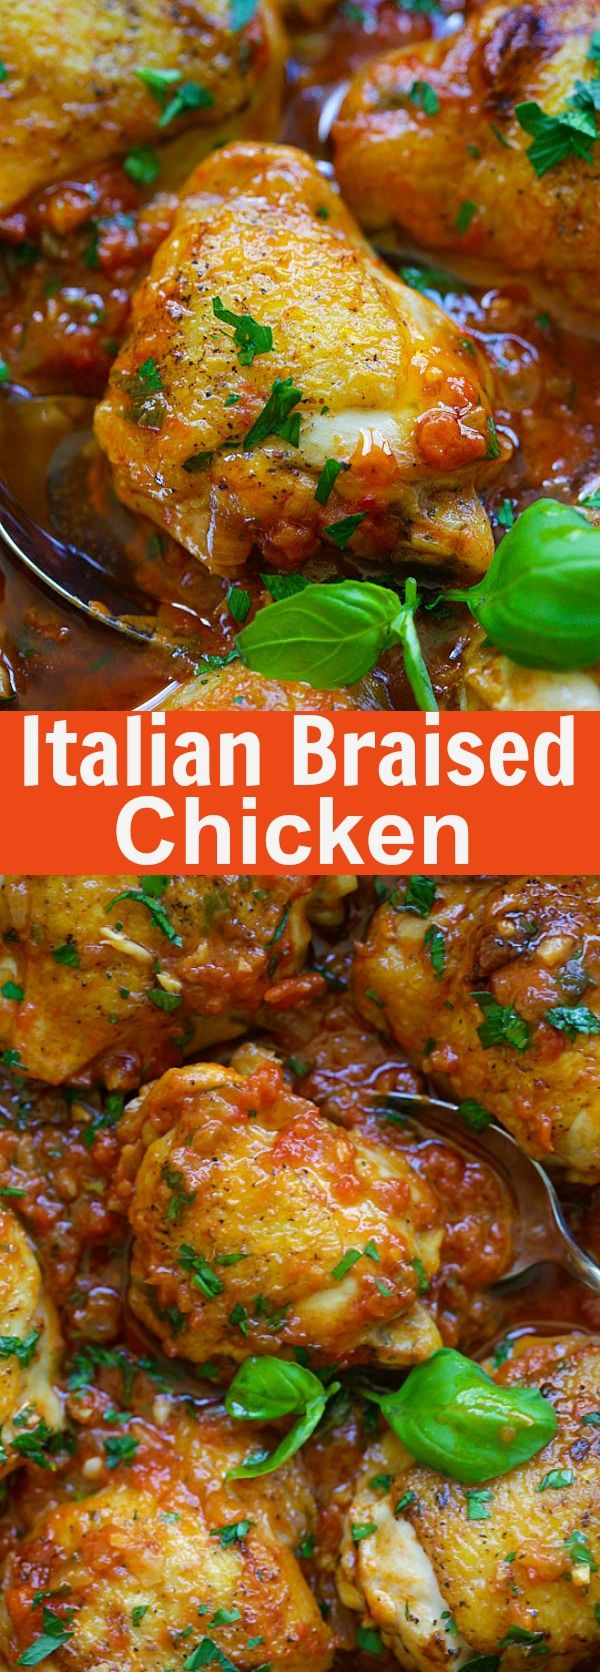 Italian Braised Chicken Delicious one-pot braised chicken recipe with tomato and basil sauce. Amazing weeknight meal for the family | rasamalaysia.com